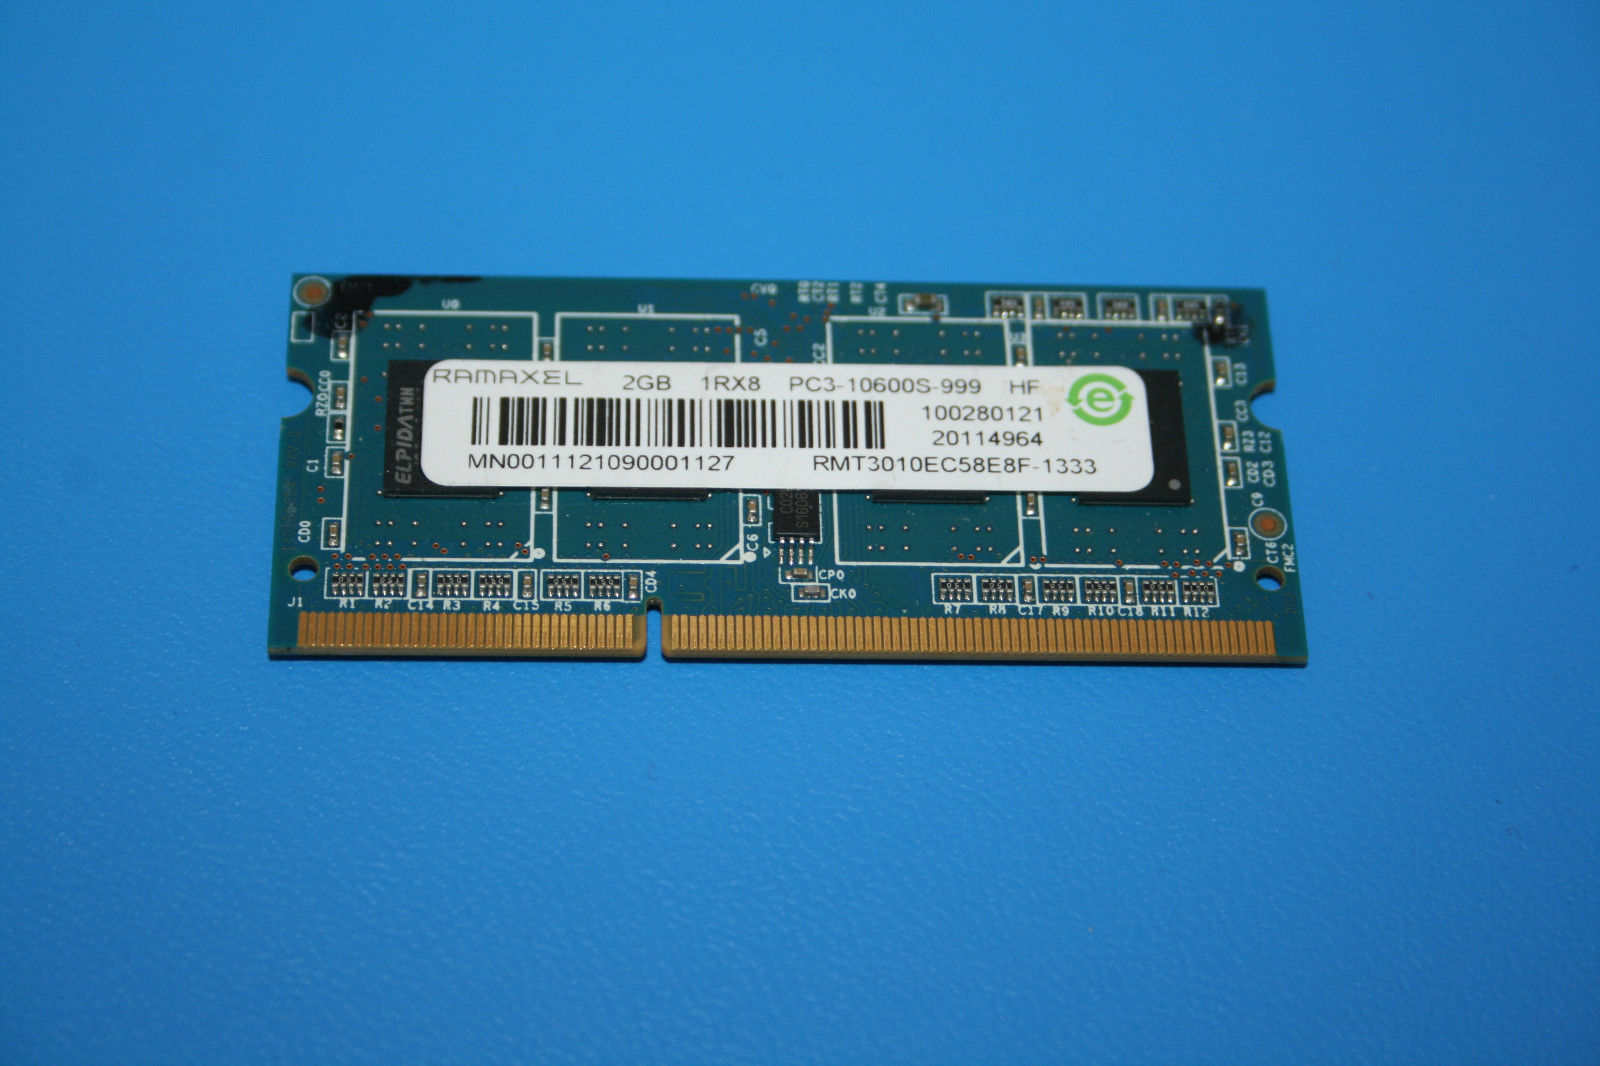 Primary image for Ramaxel 2 GB DIMM 1333 MHz DDR3 Memory (RMT3020EF48E8W-1333)